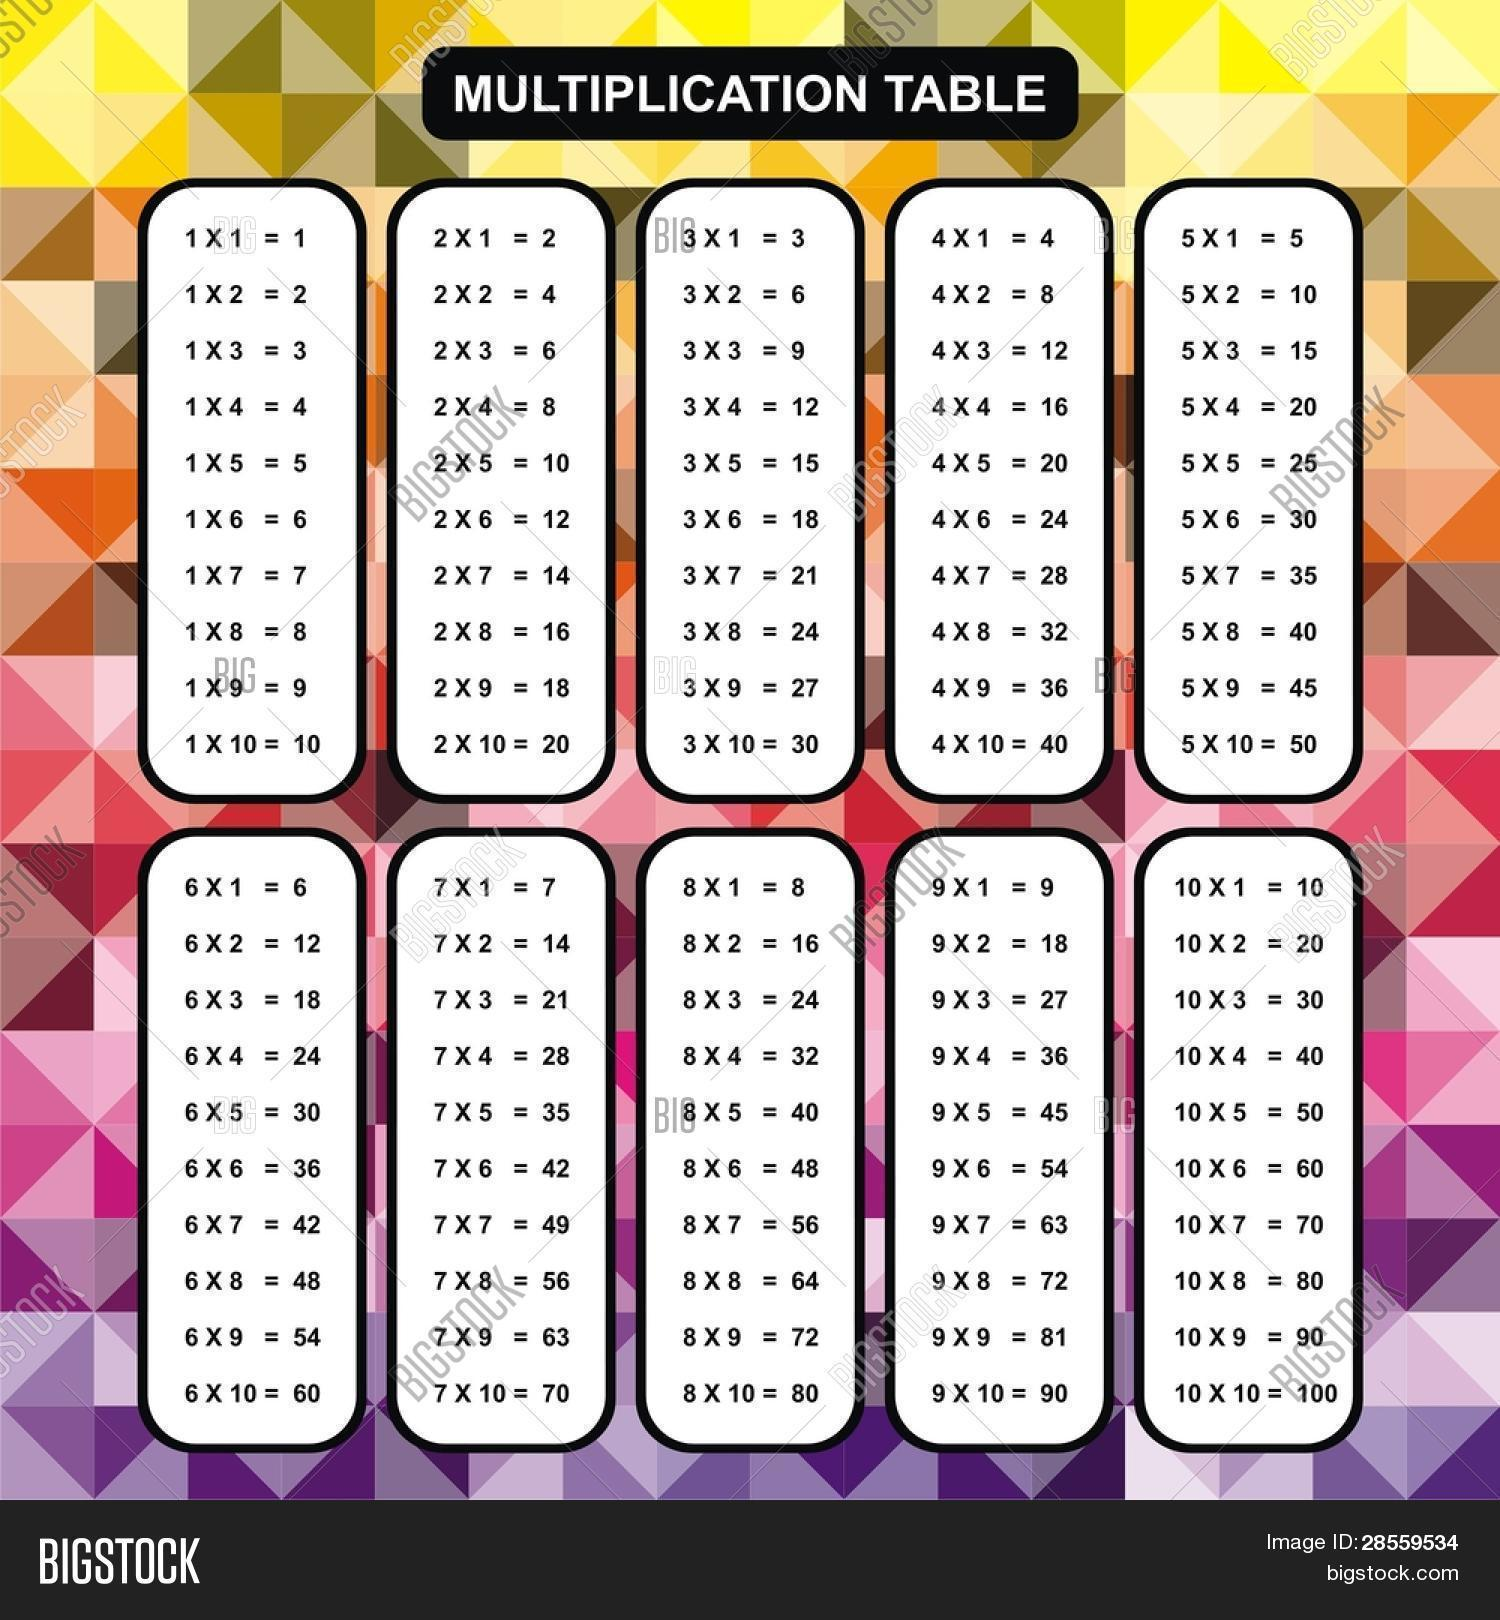 Vector multiplication table vector photo bigstock vector multiplication table educational material for primary school level colorful abstract background one gamestrikefo Image collections